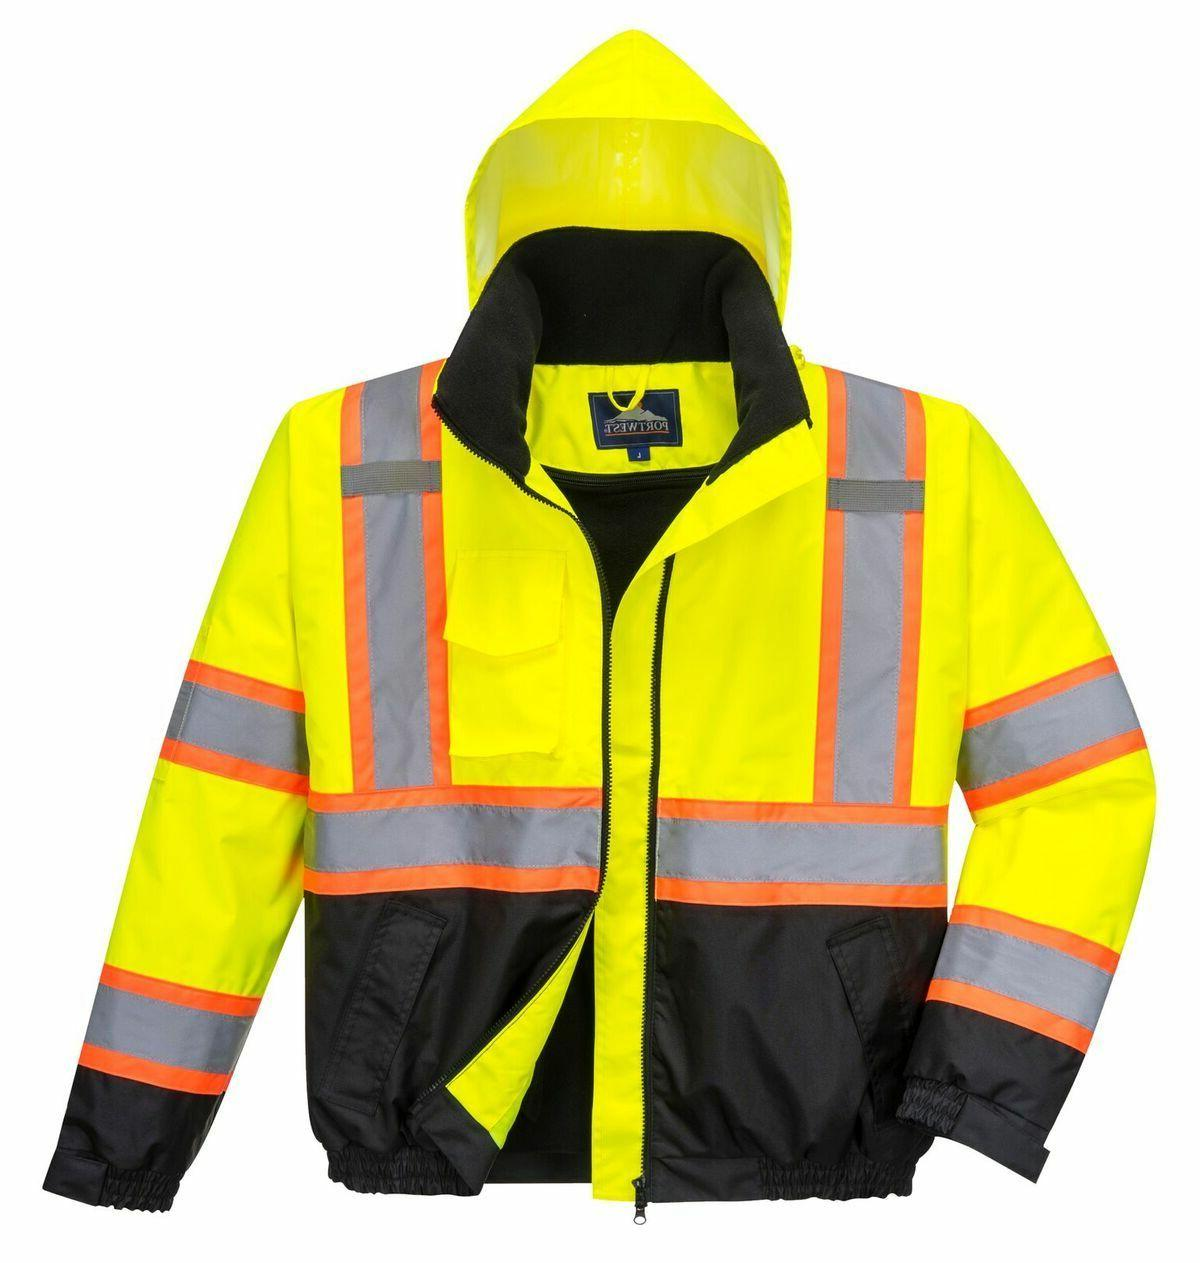 HI-VIS 2-IN-1 CONTRAST TAPE BOMBER JACKET CLASS 3 WATERPROOF